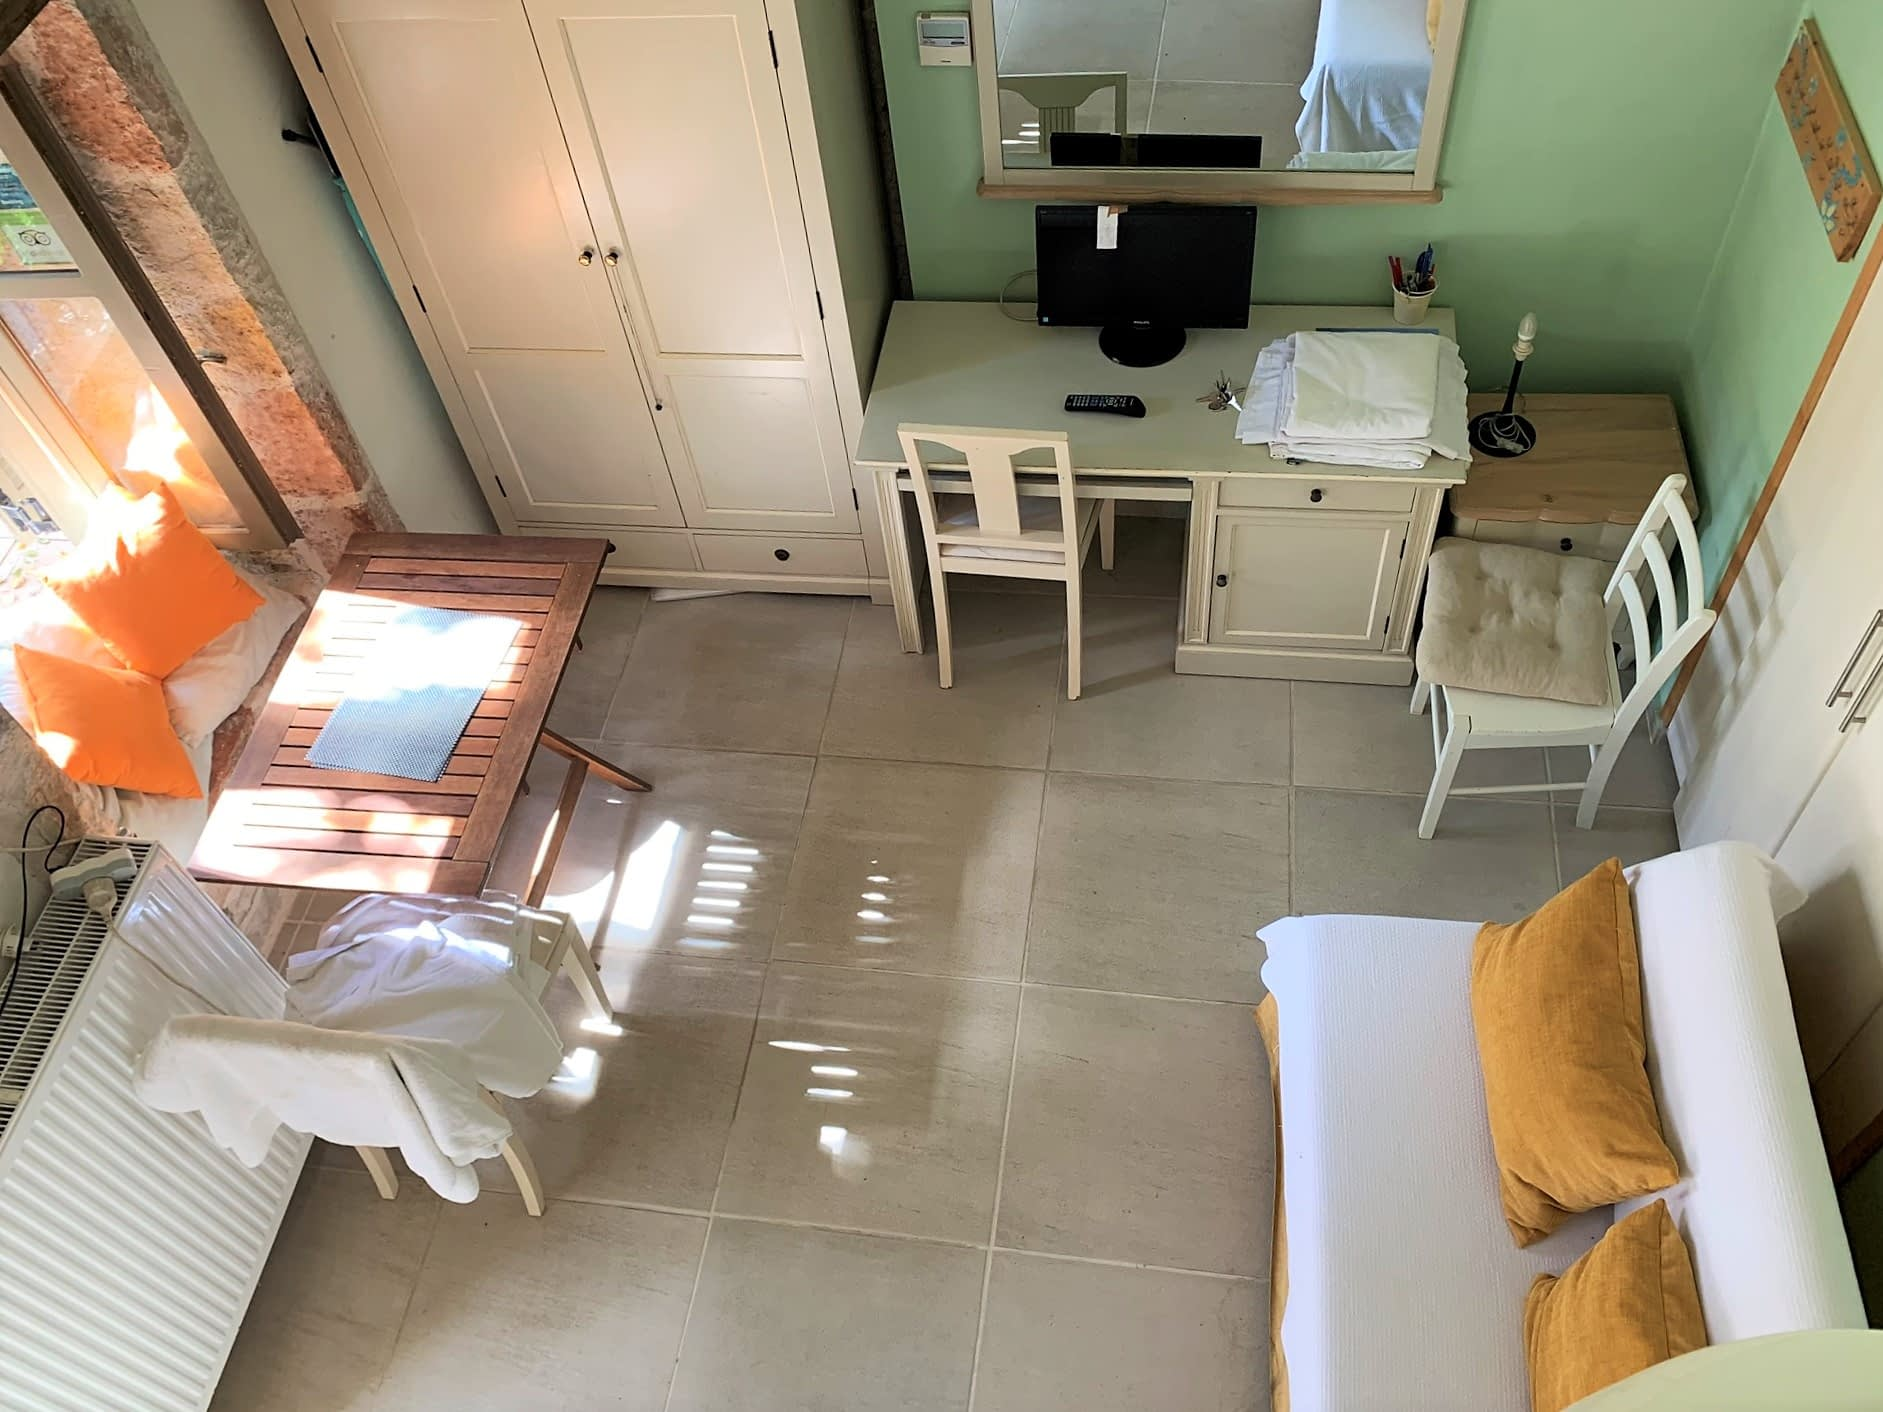 Interior of house of apartment complex for sale in Ithaca Greece, Vathi